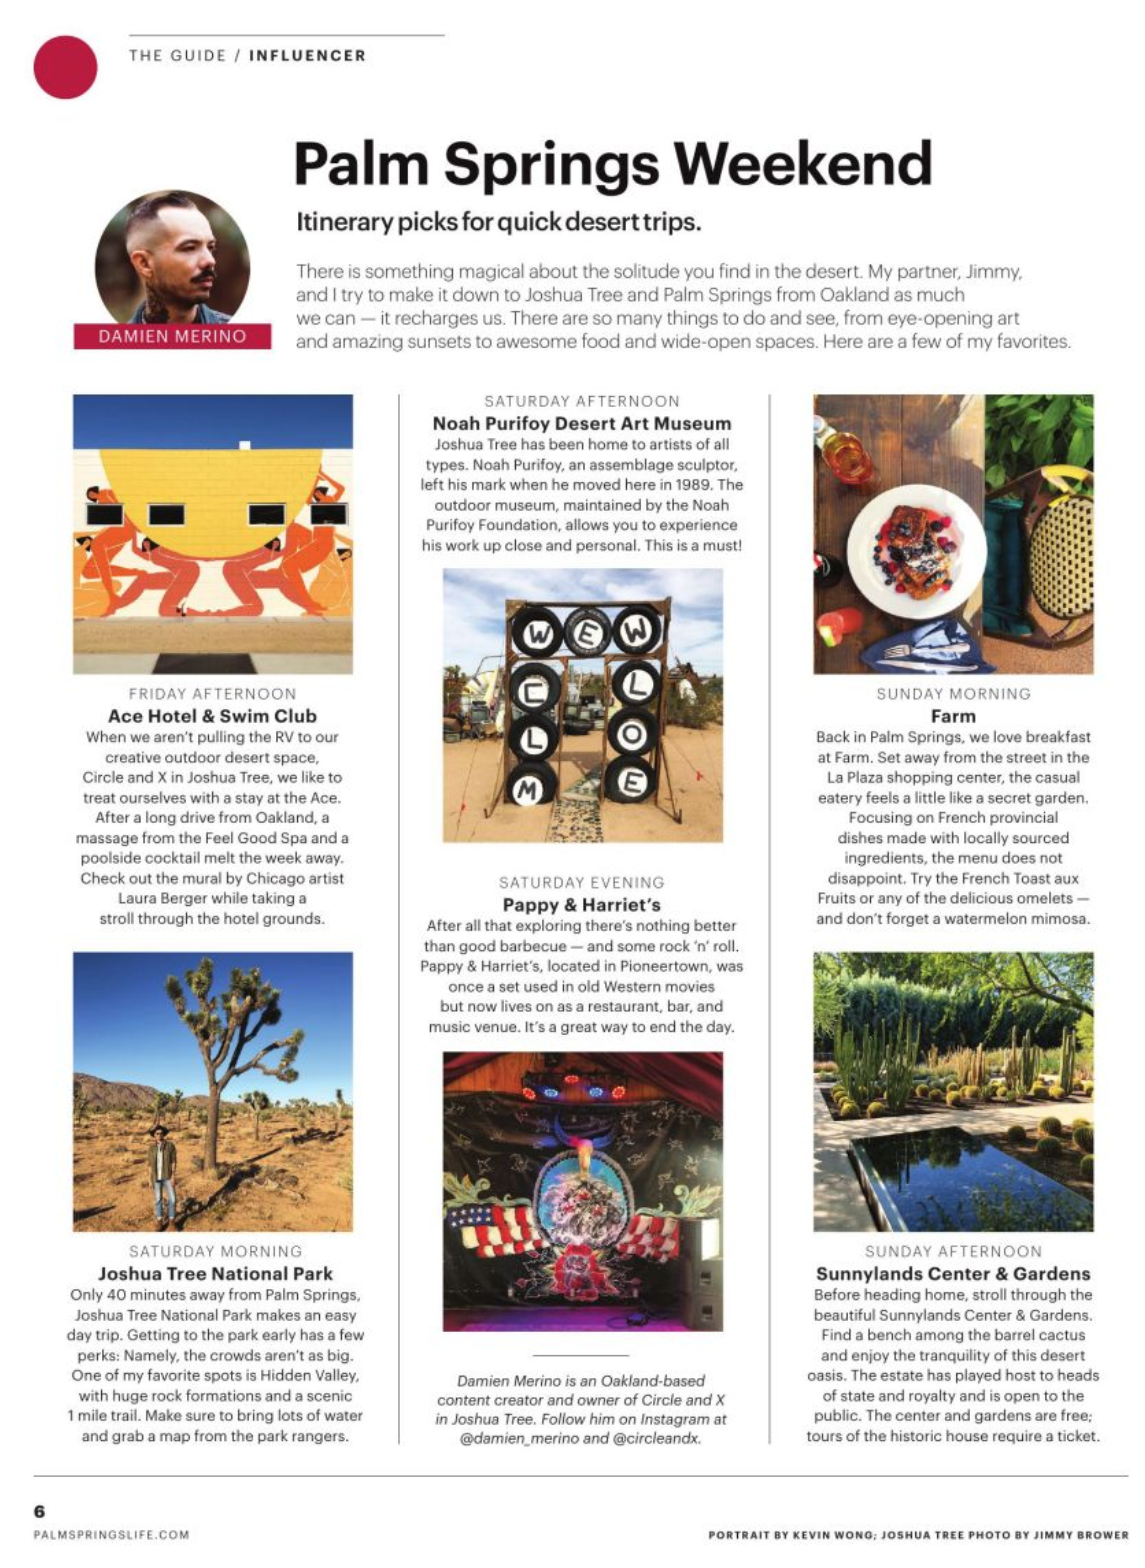 PALM SPRINGS LIFE MAGAZINE - ITINERARY PICKS FOR QUICK DESERT TRIPS